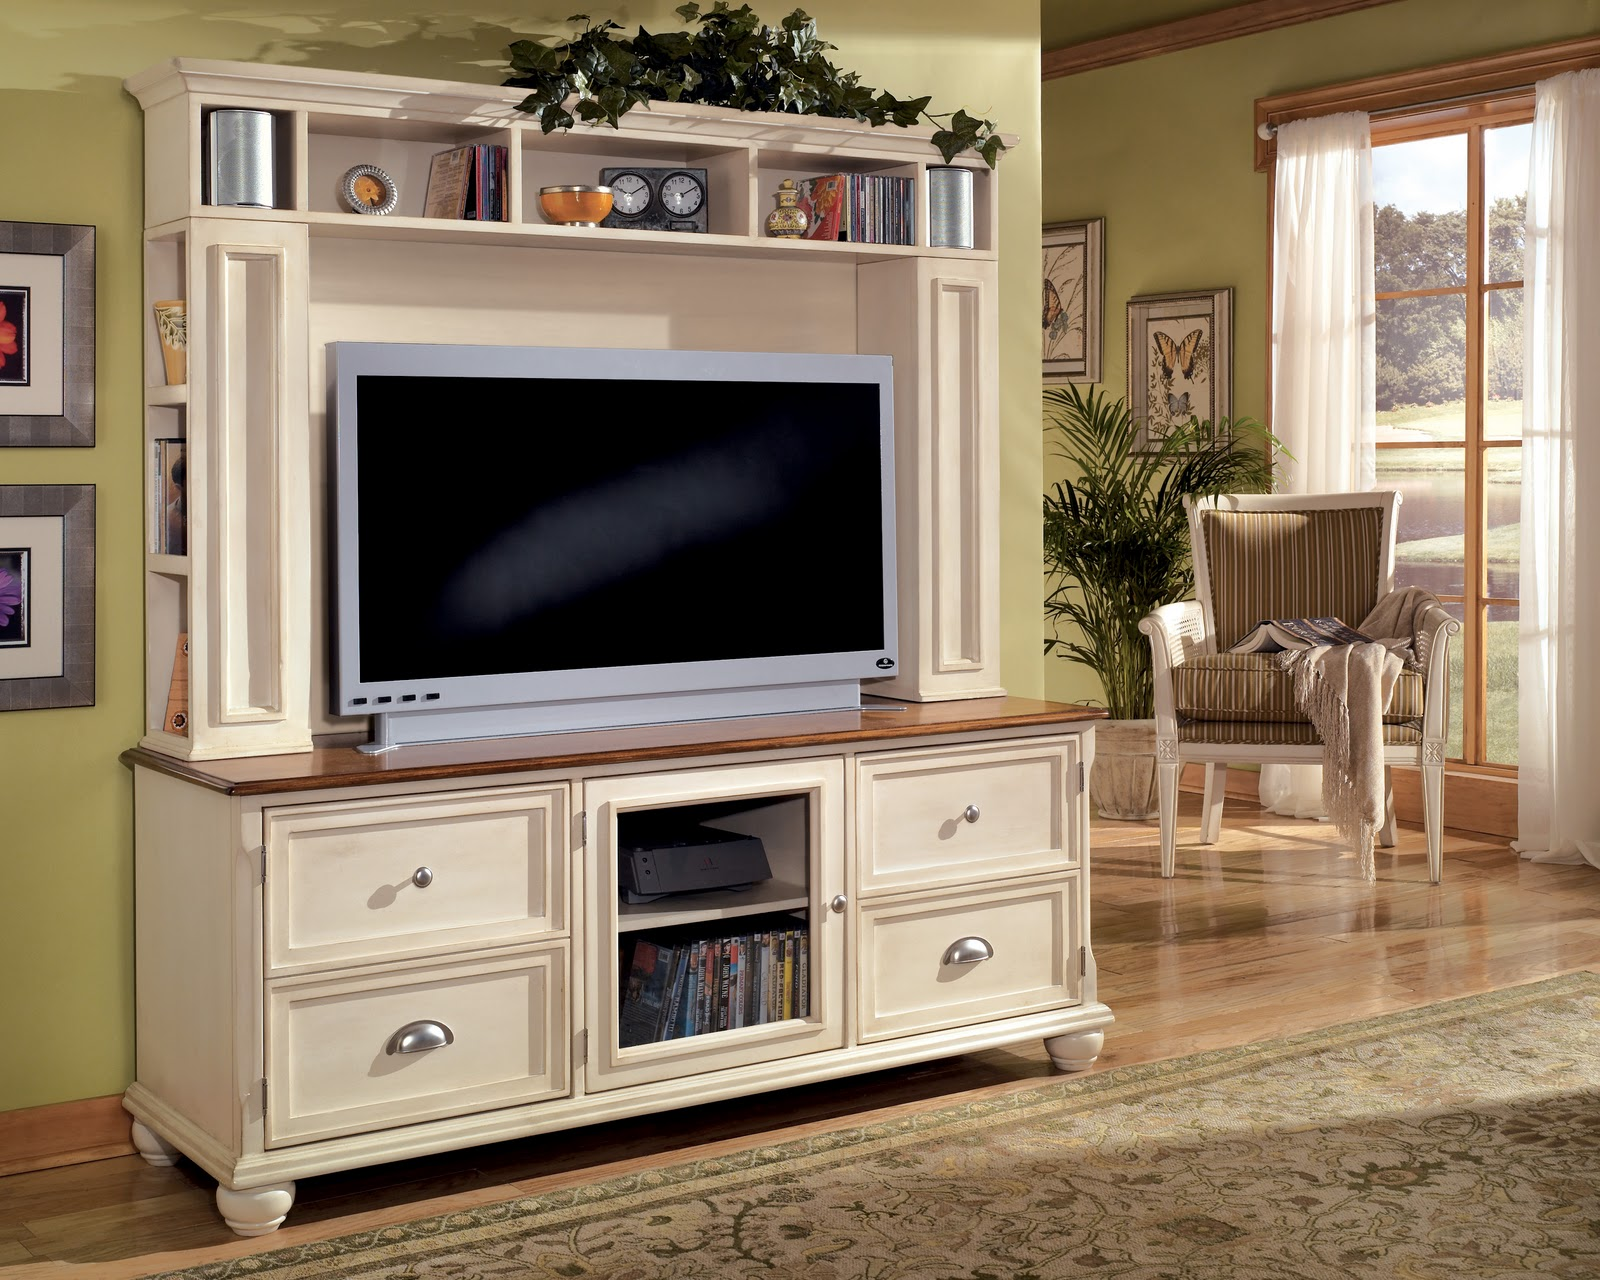 Tv Tables Big Tv Stand: TV Stands Outlet: Matching Entertainment Furniture With